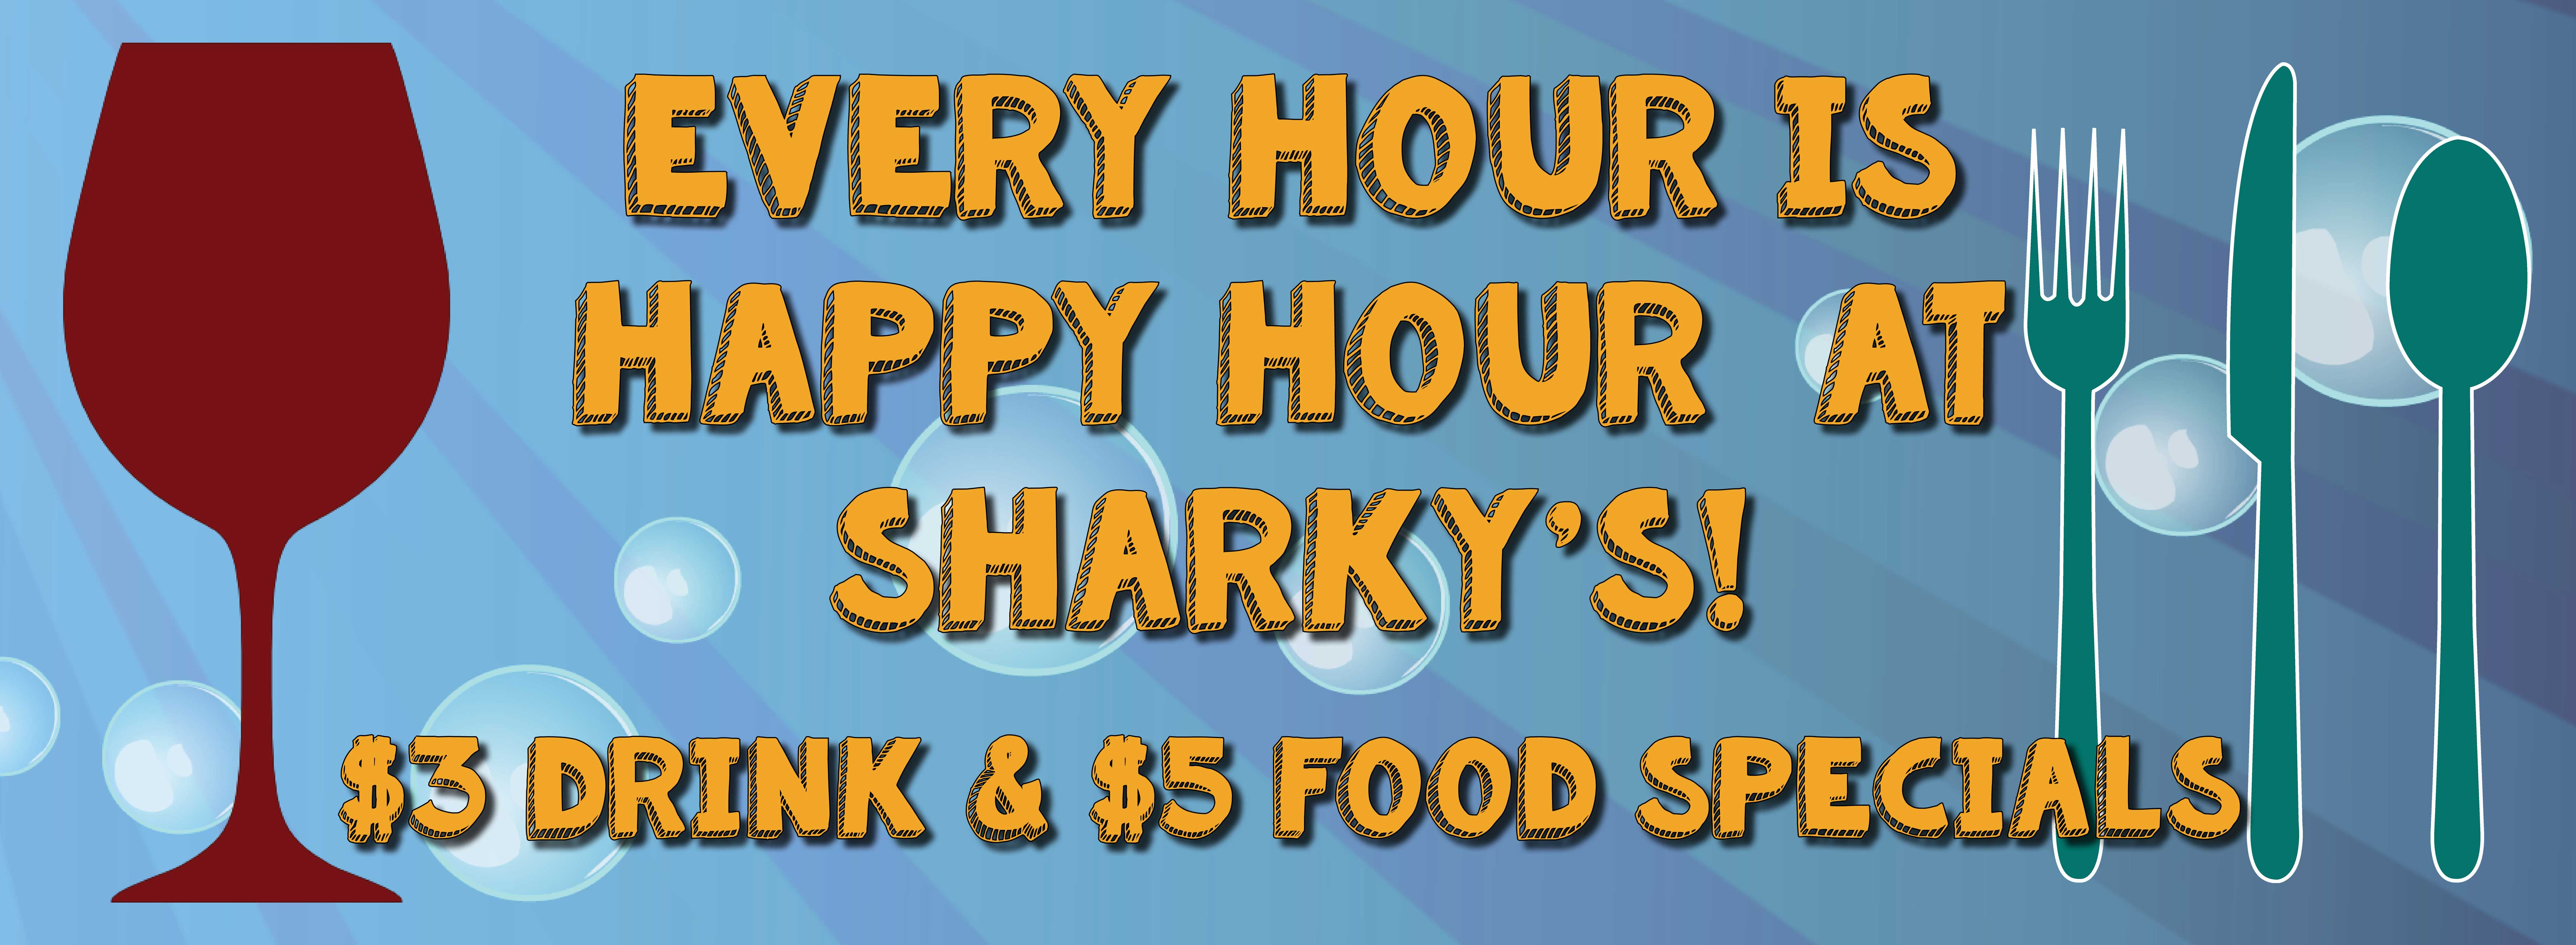 Sharkys Happy Hour Banner 9.18